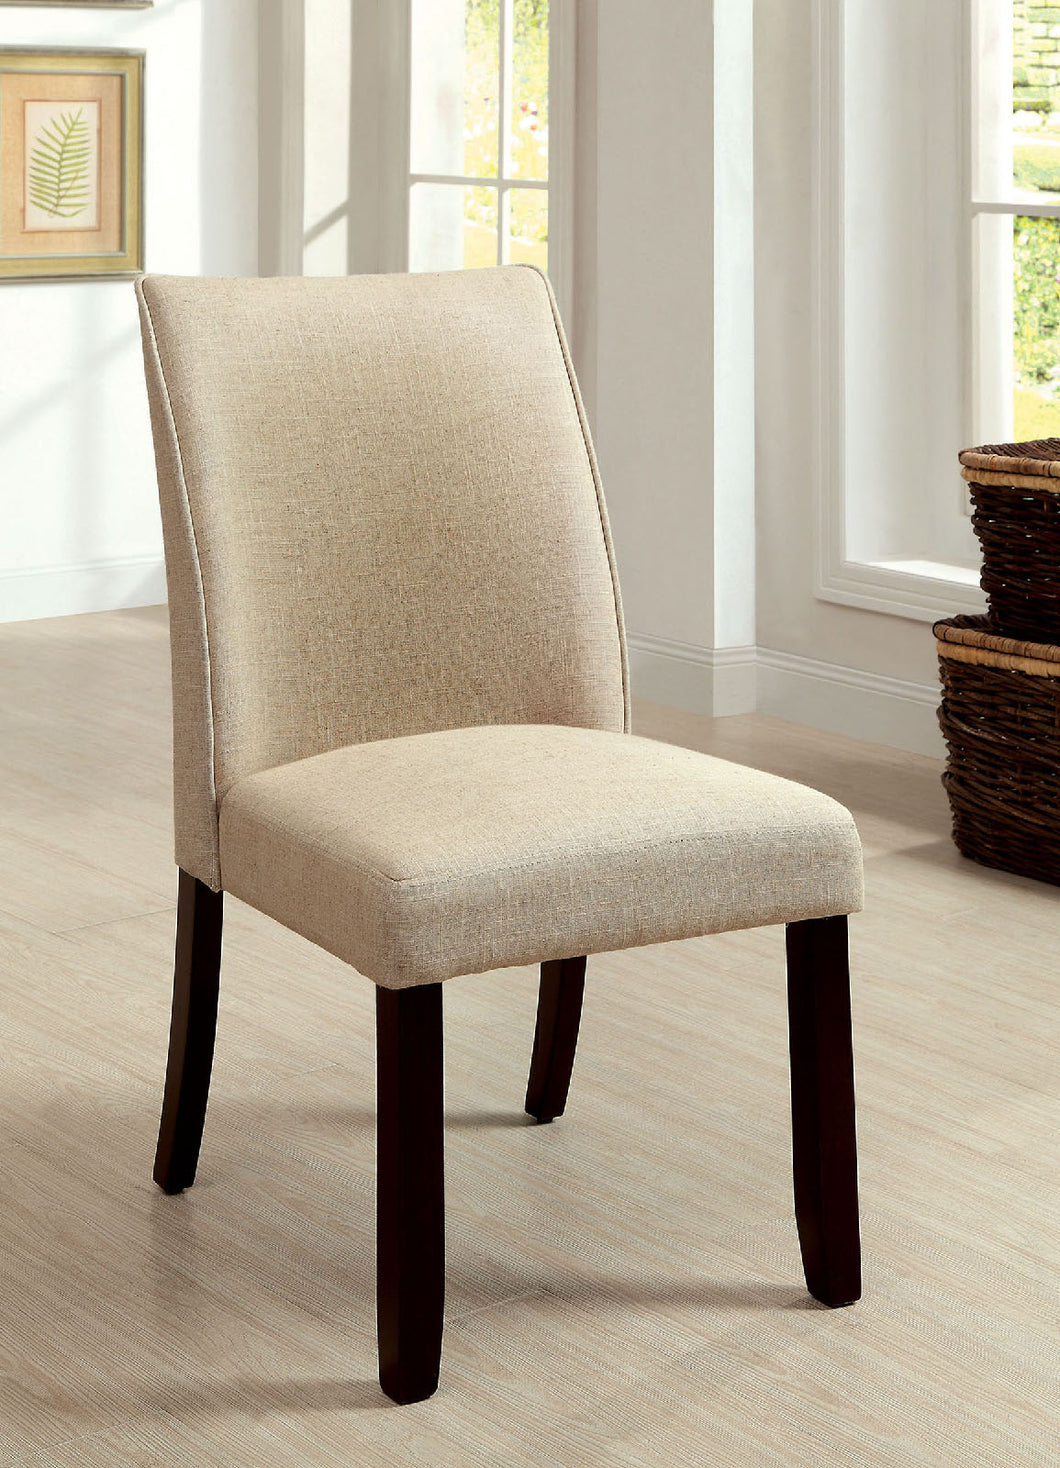 CIMMA Contemporary Dining Chair